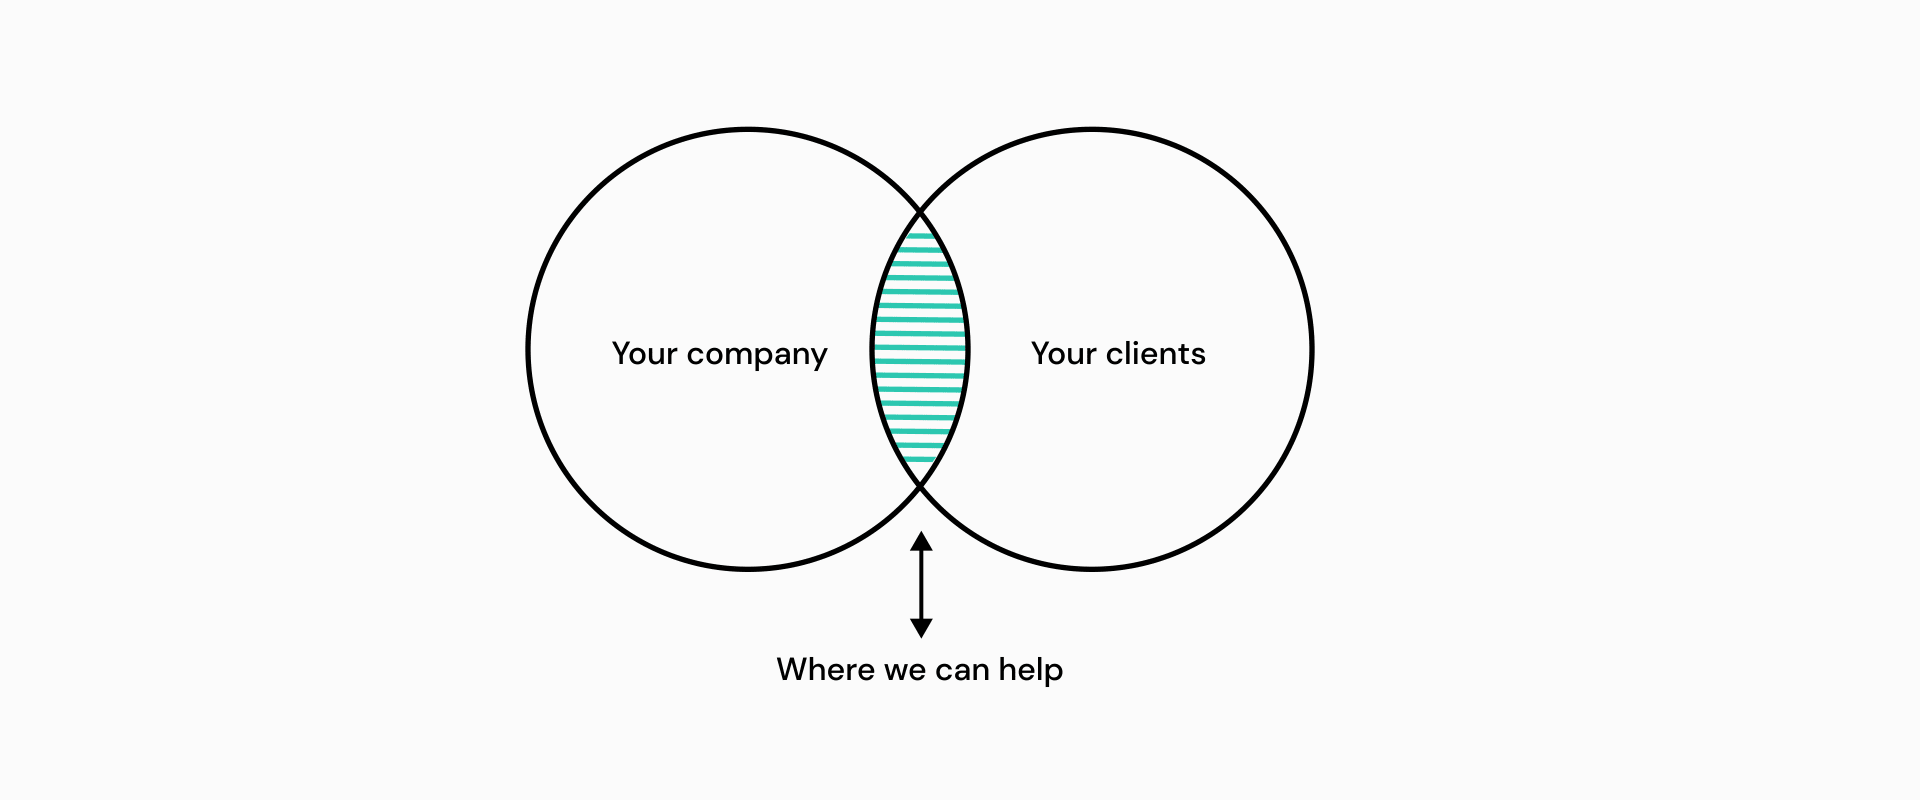 We can help you to reach your clients